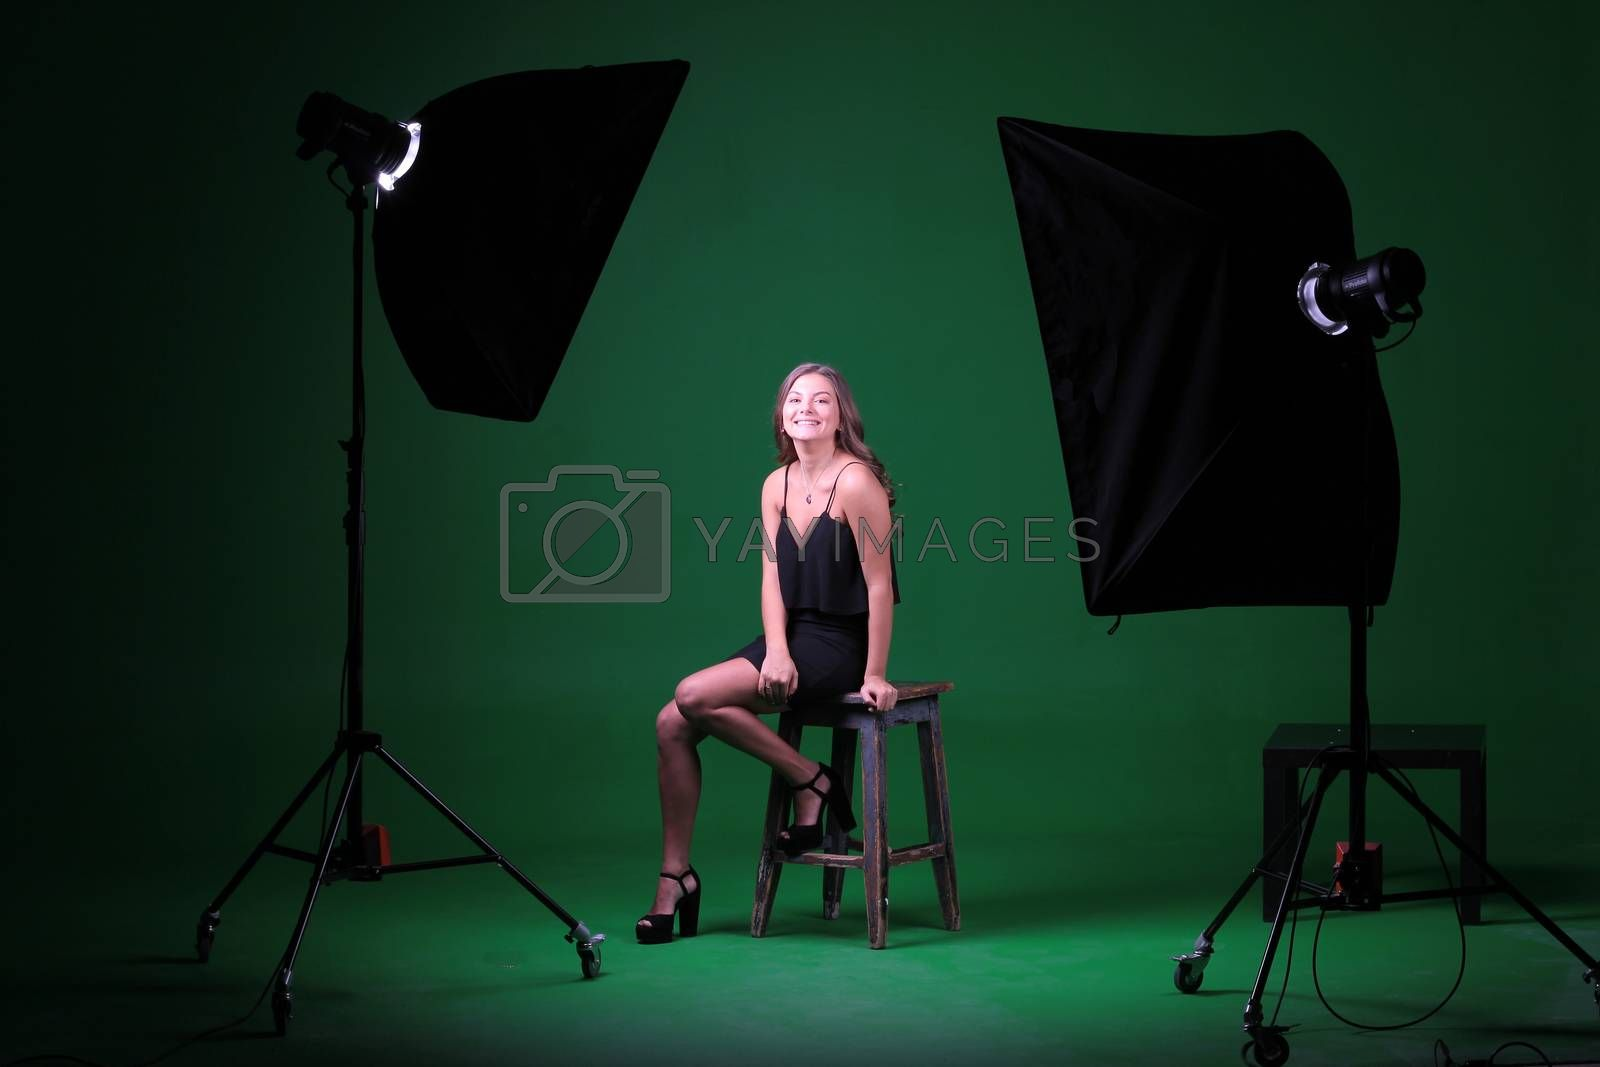 The process of shooting girls in the Studio on a green background by mdsfotograf